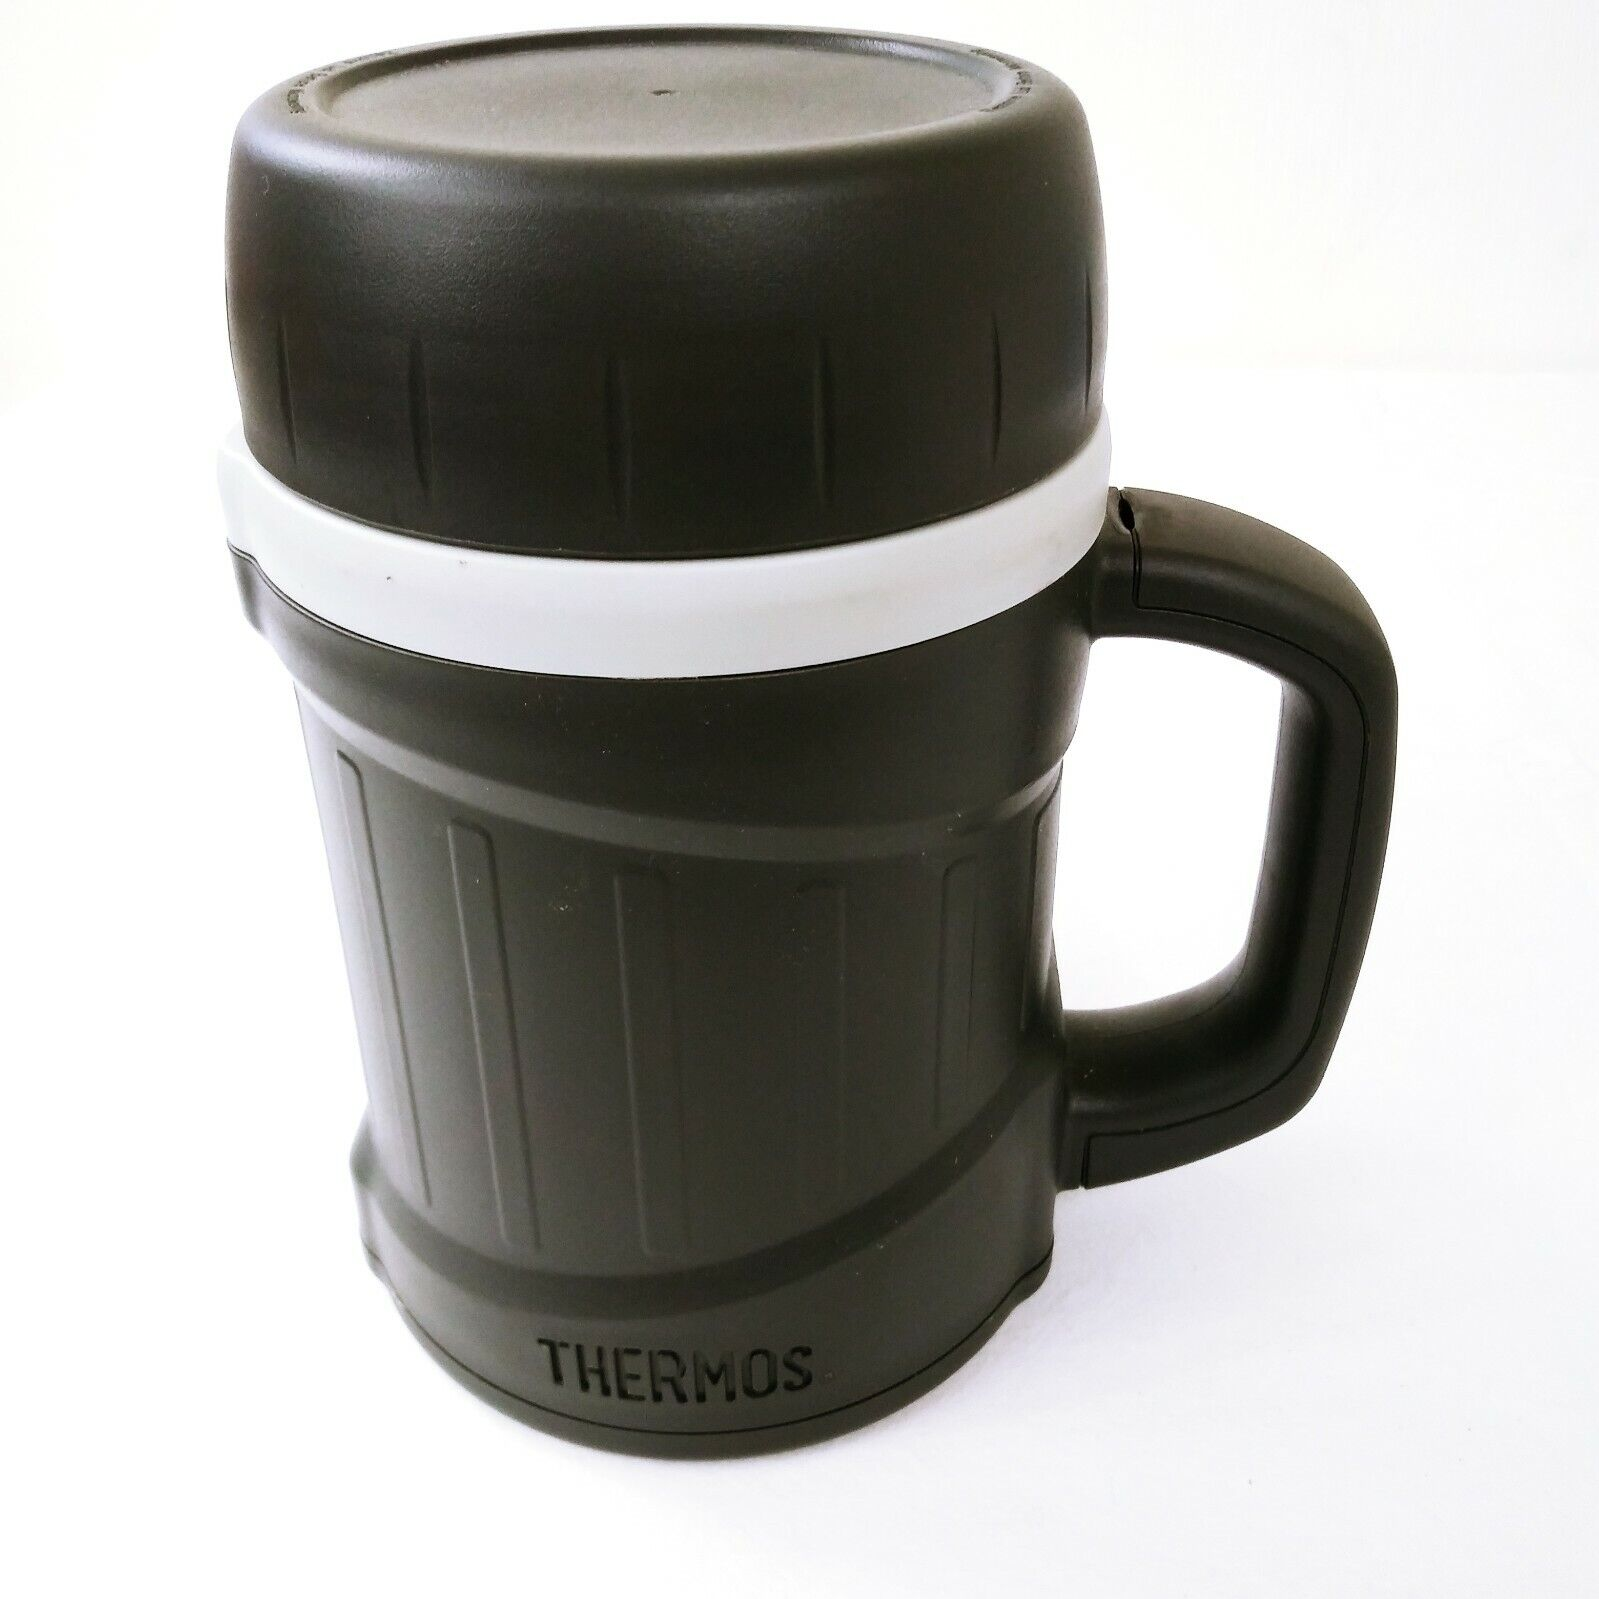 Thermos USA Food Flask Soup Cup Drink 16 oz 470ml 0.47l